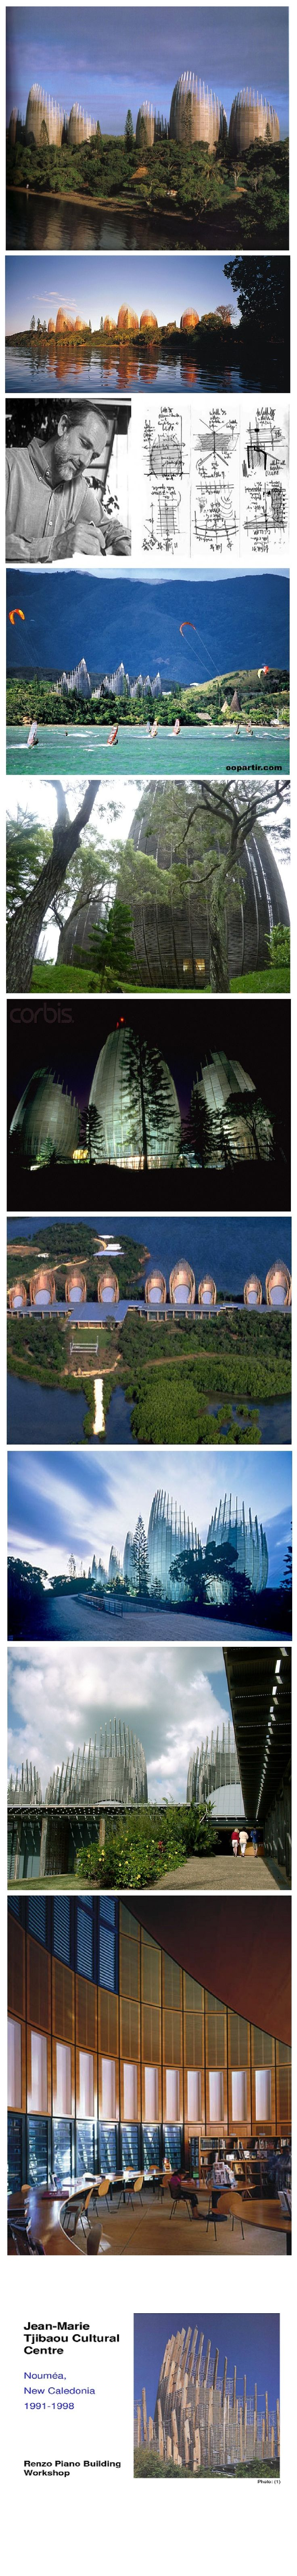 Renzo Piano's Jean-Marie Tjibaou Cultural Center On the narrow Tinu Peninsula, near Nouméa, capital of New Caledonia